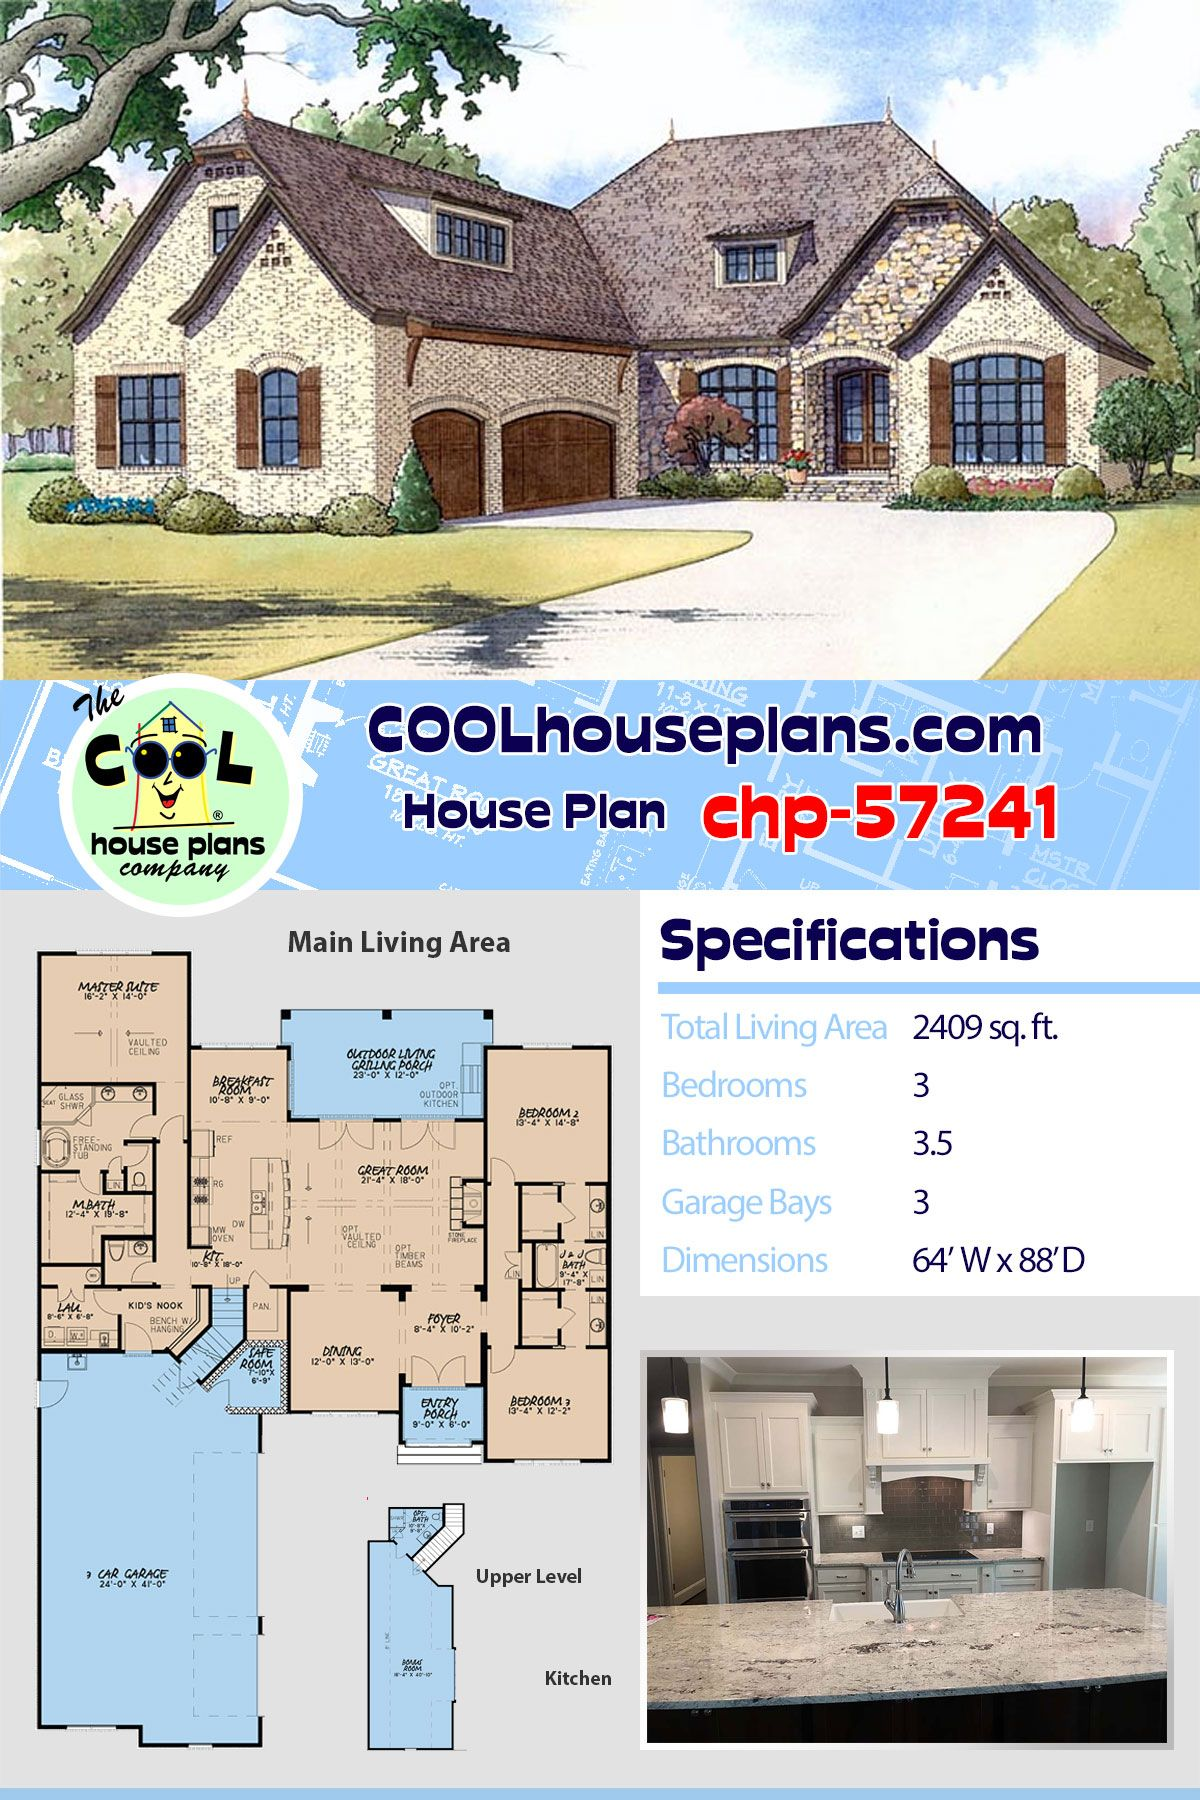 French Country Style House Plan 82419 With 3 Bed 4 Bath 3 Car Garage Country Style House Plans Best House Plans House Plans